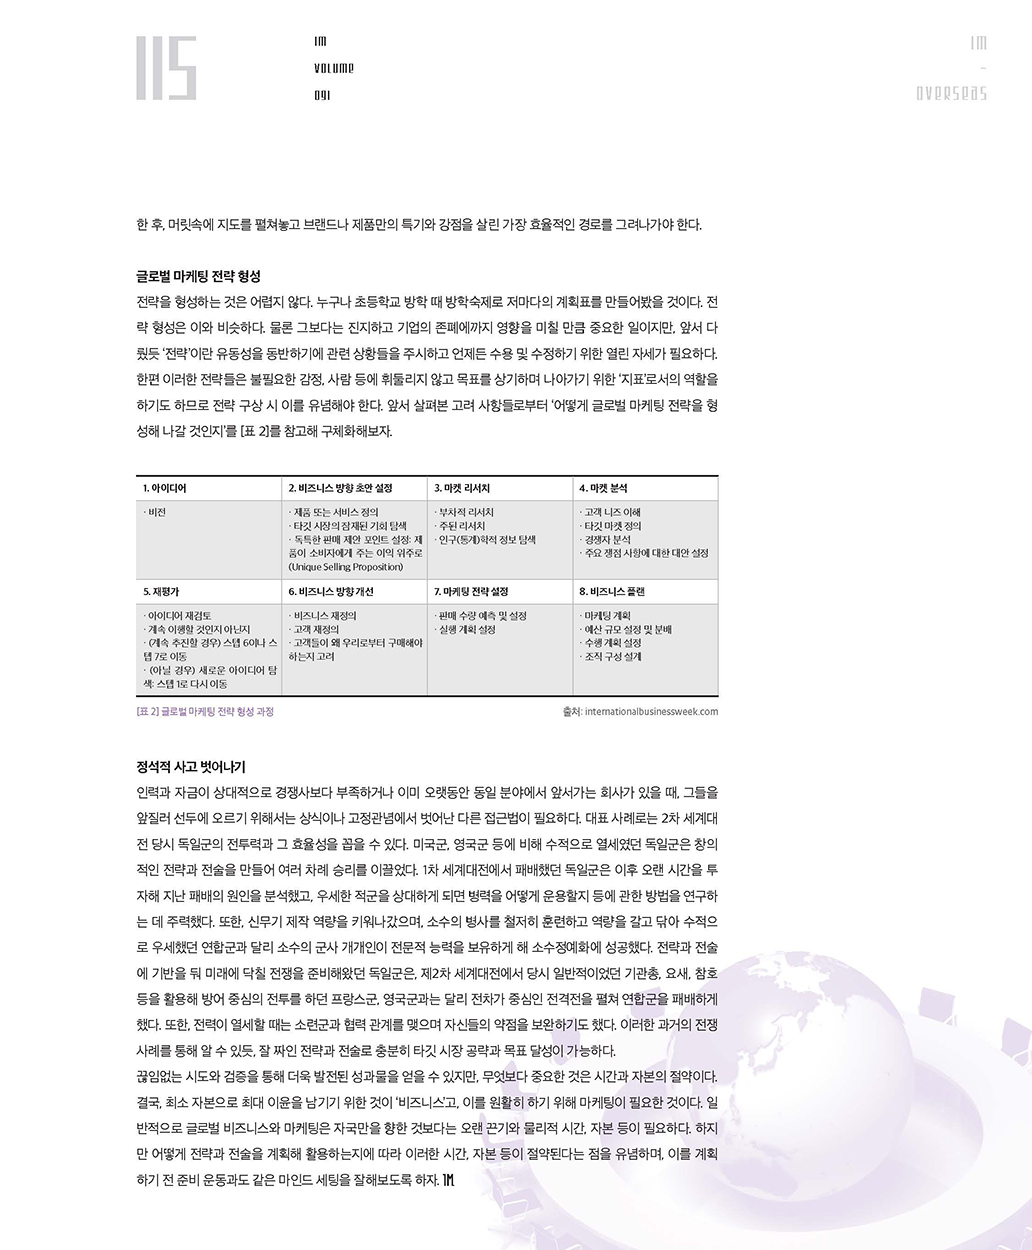 201511_im overseas_Page_2